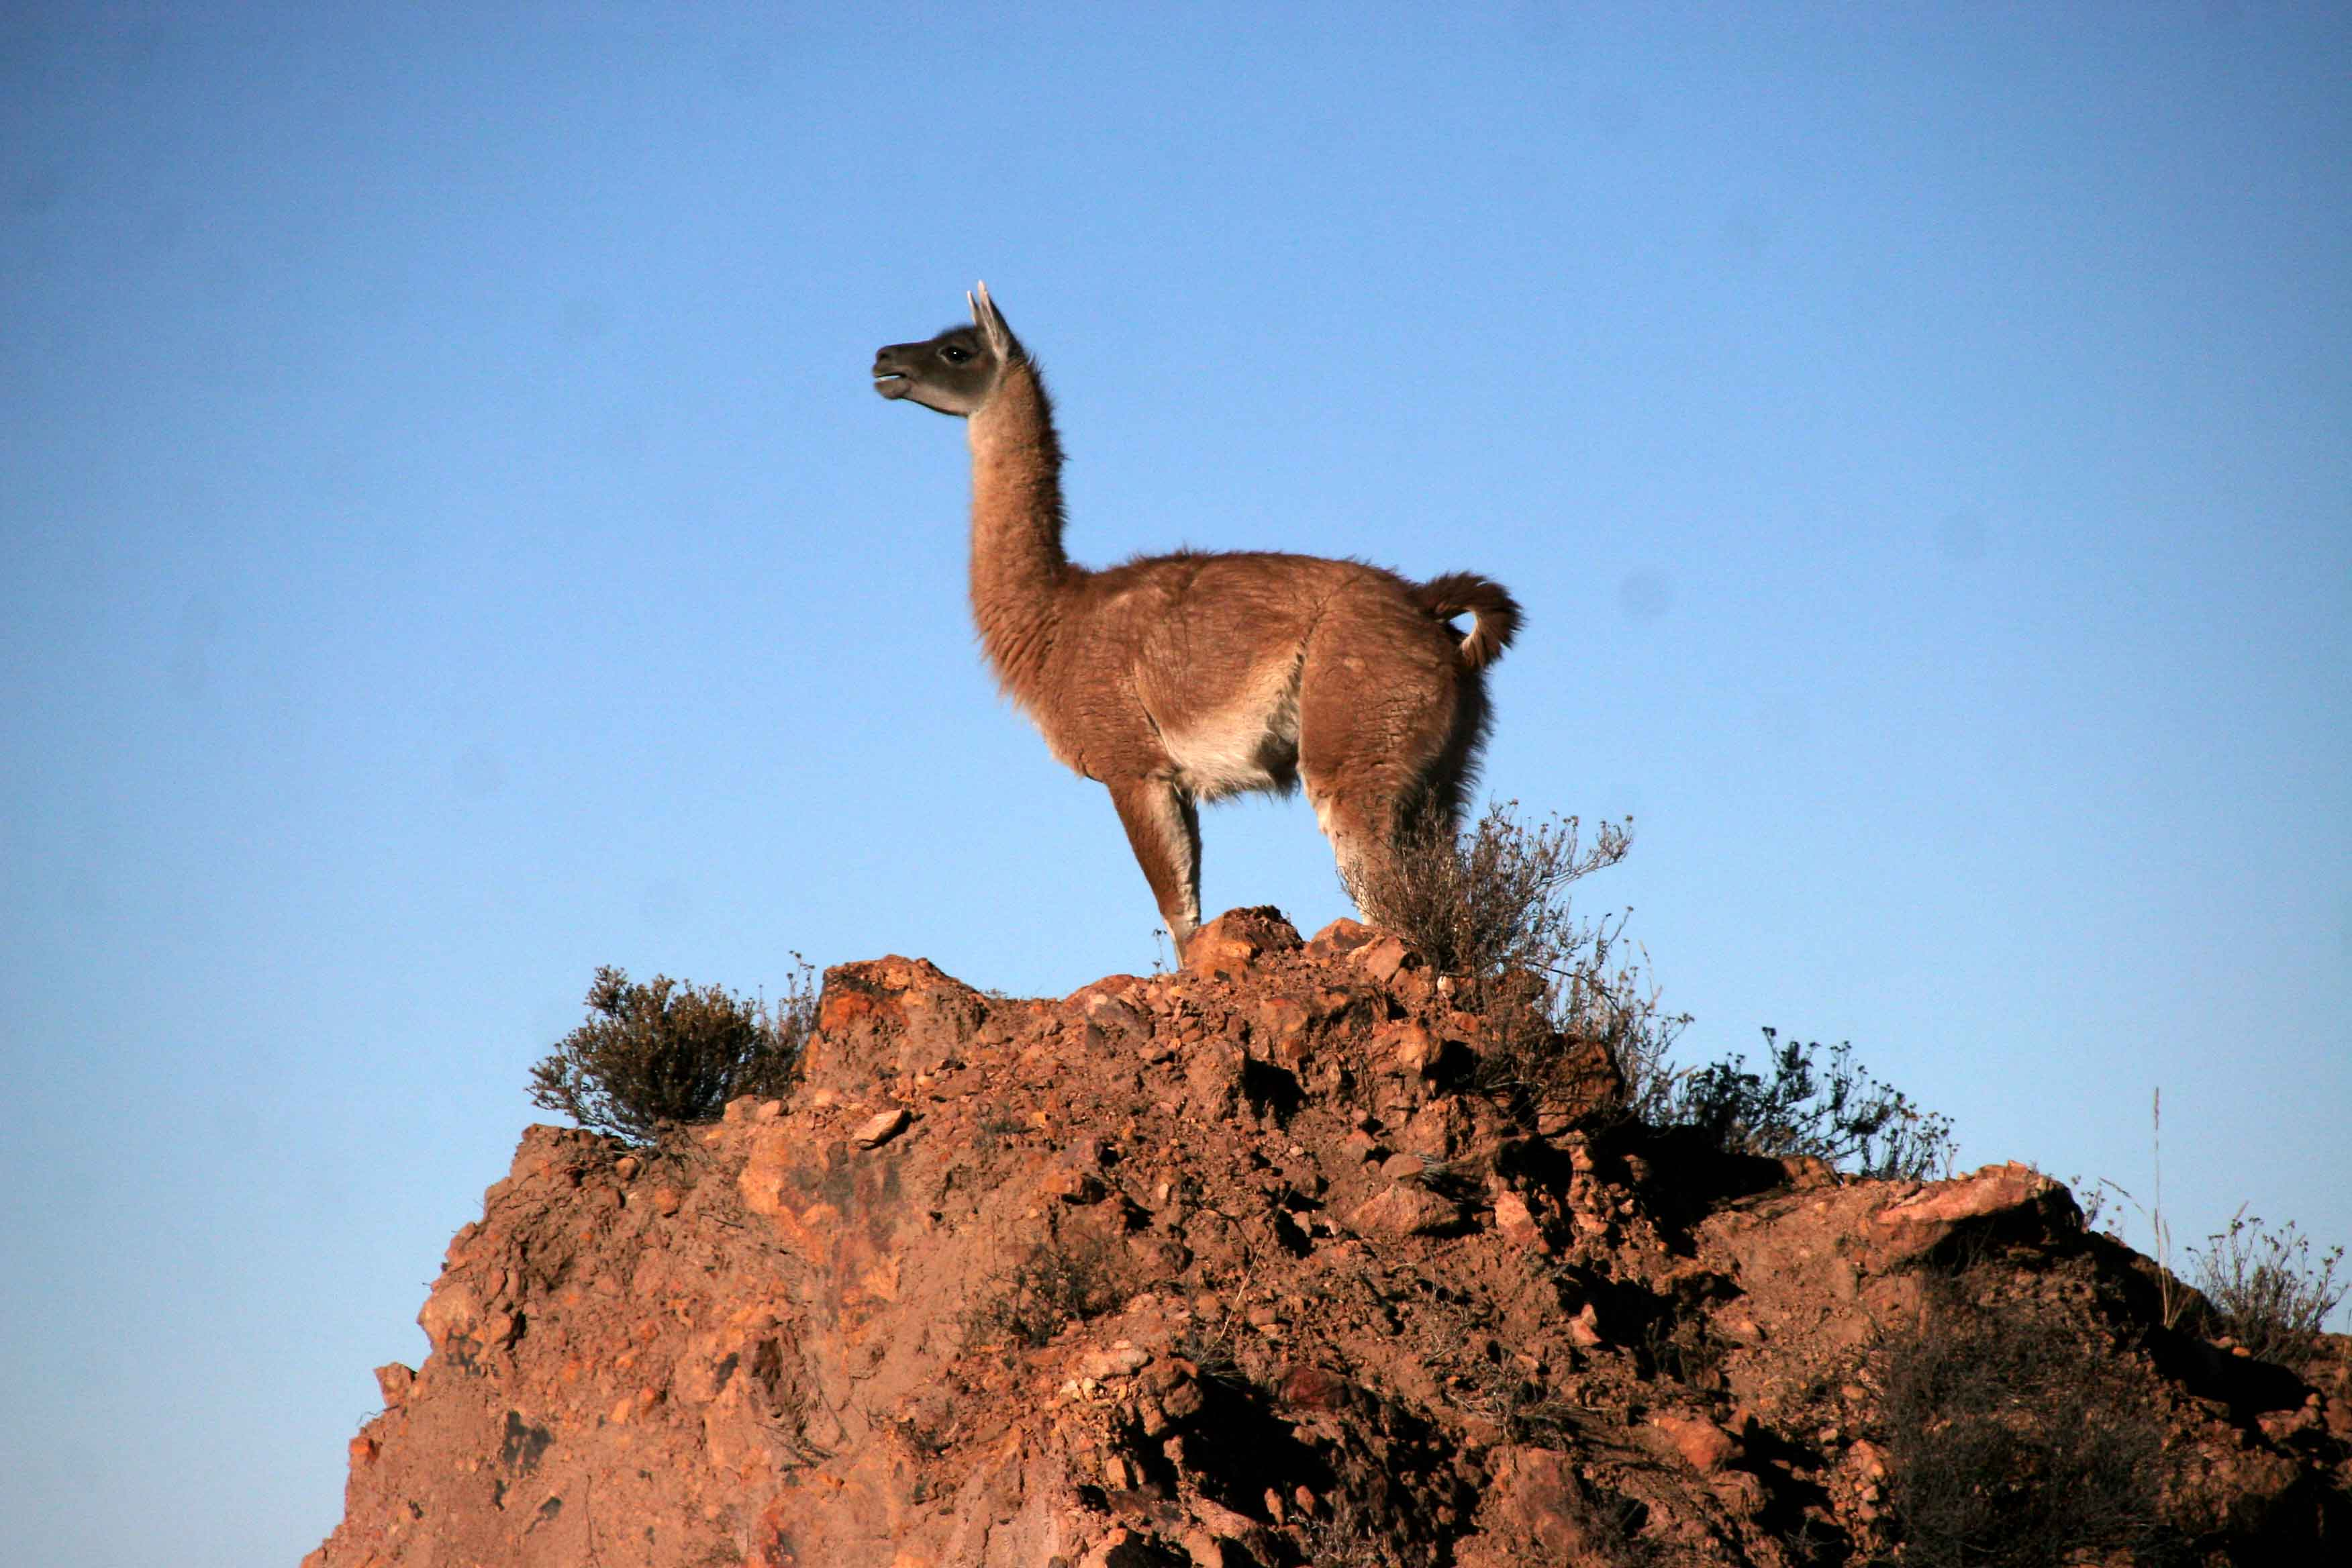 Finest fabric in the world; Vicuna